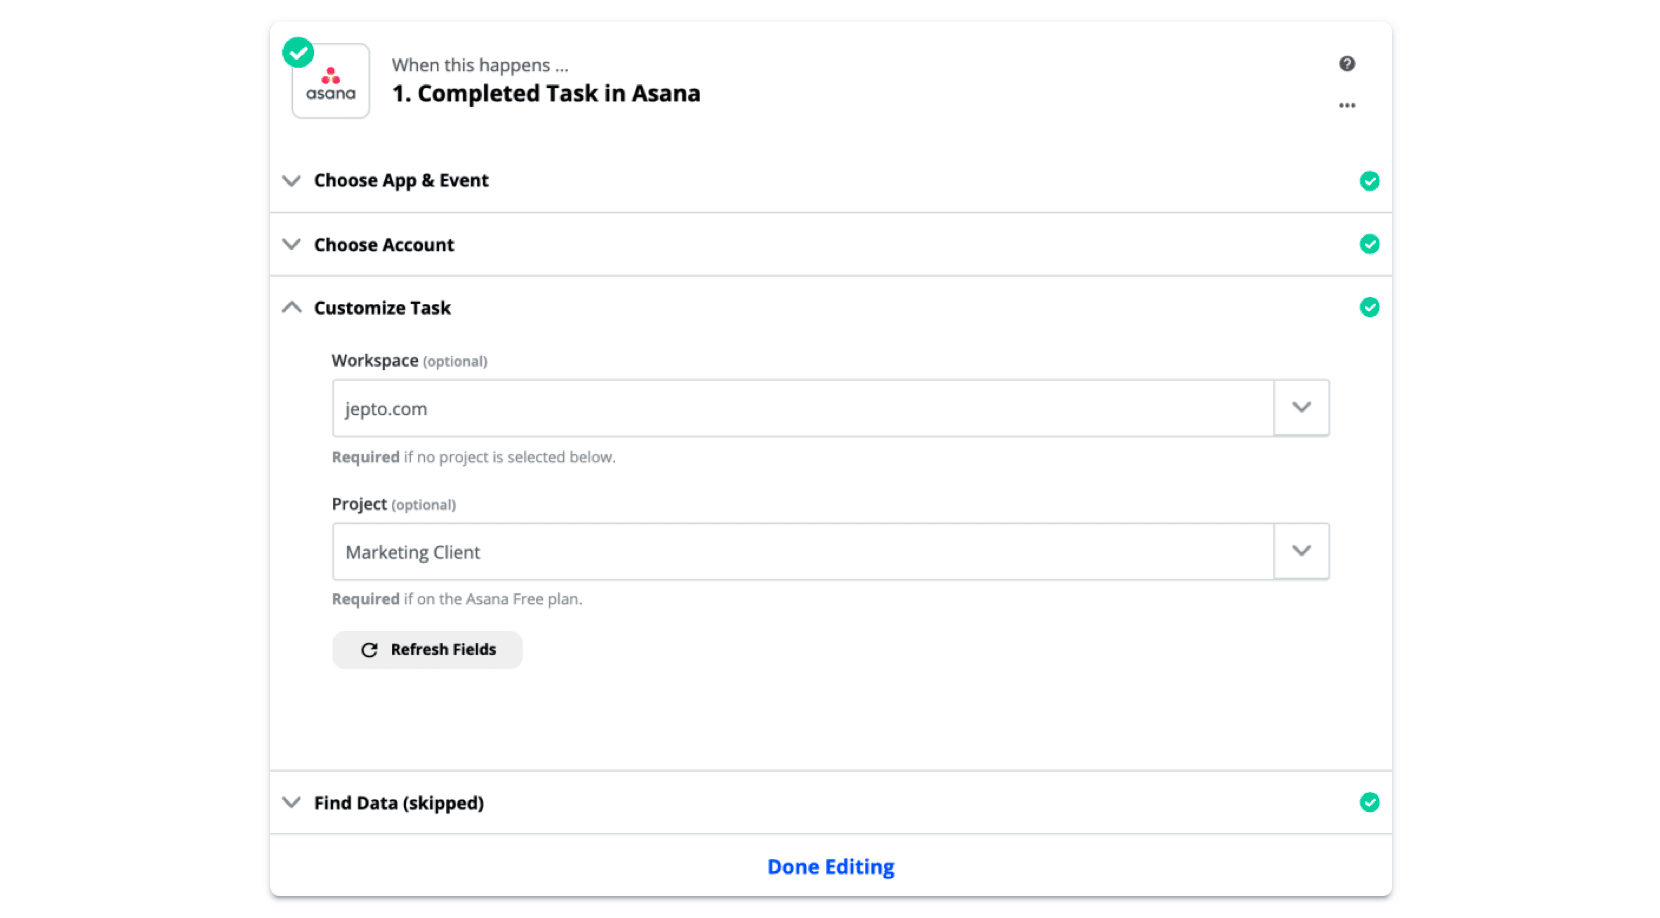 Completed task in Asana Trigger